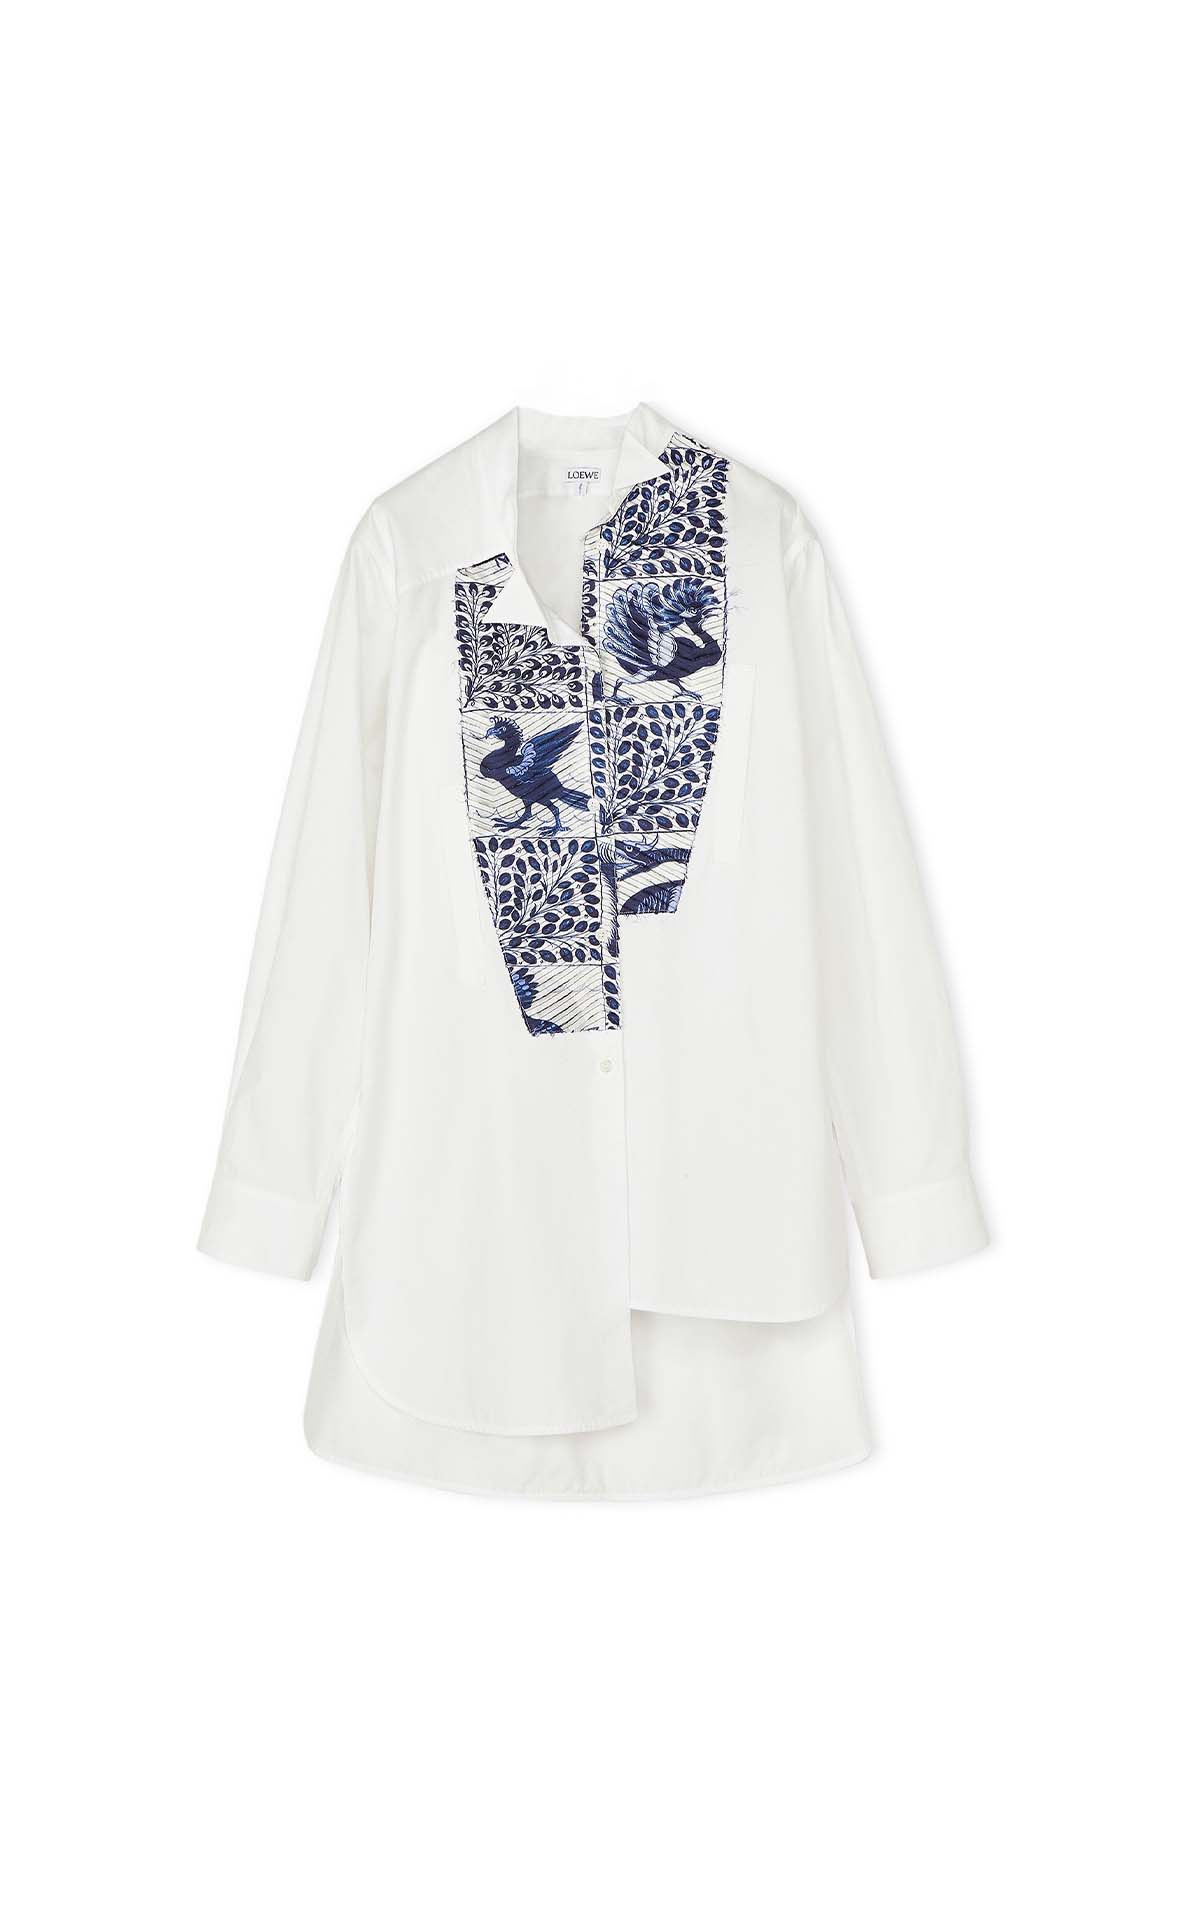 Loewe asymmetrical animal shirt at The Bicester Village Shopping Collection